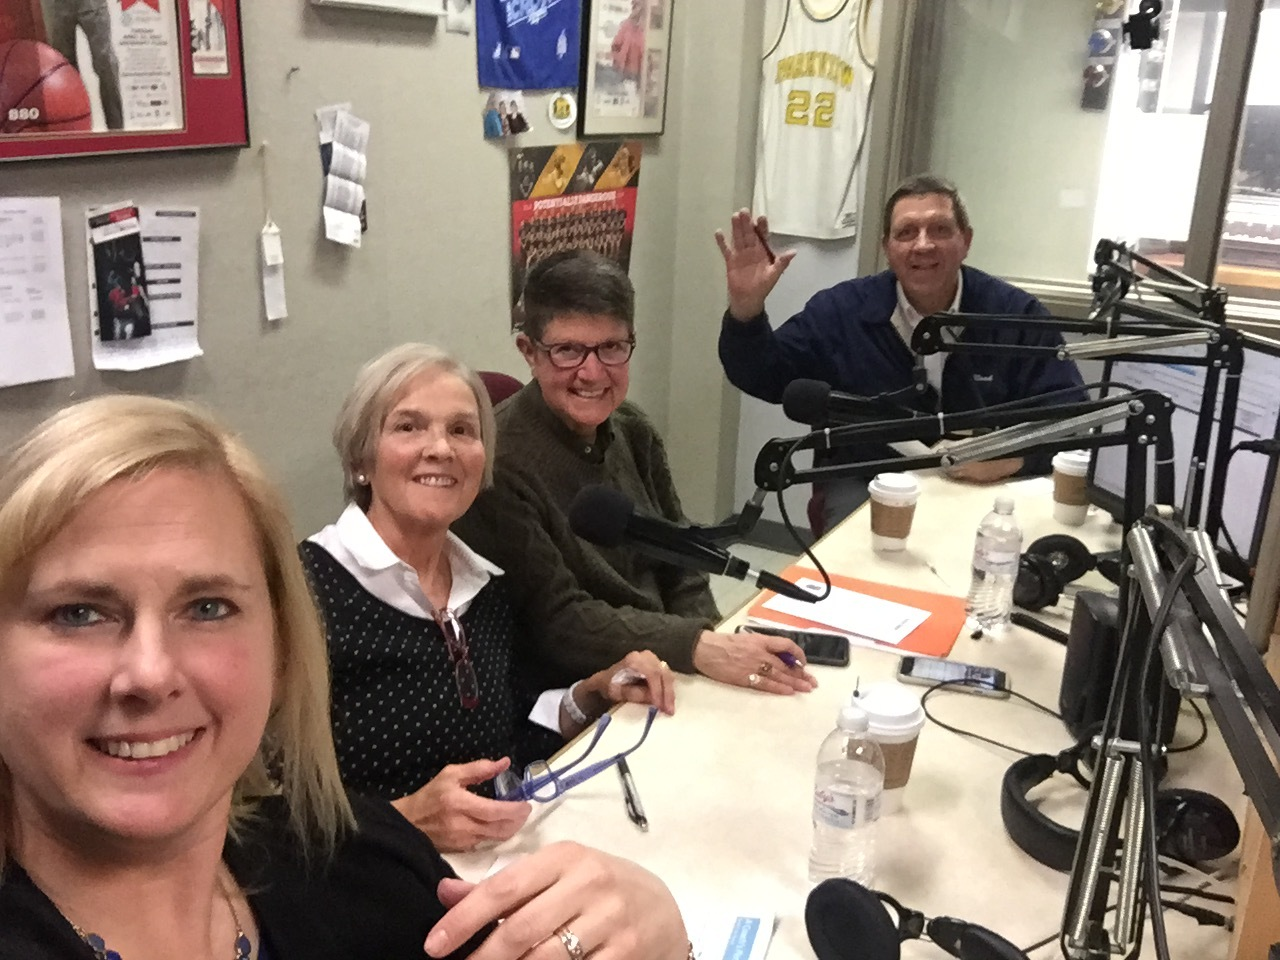 Dr. Julie Leeth, Becky Oakes, and Greg Stephenson